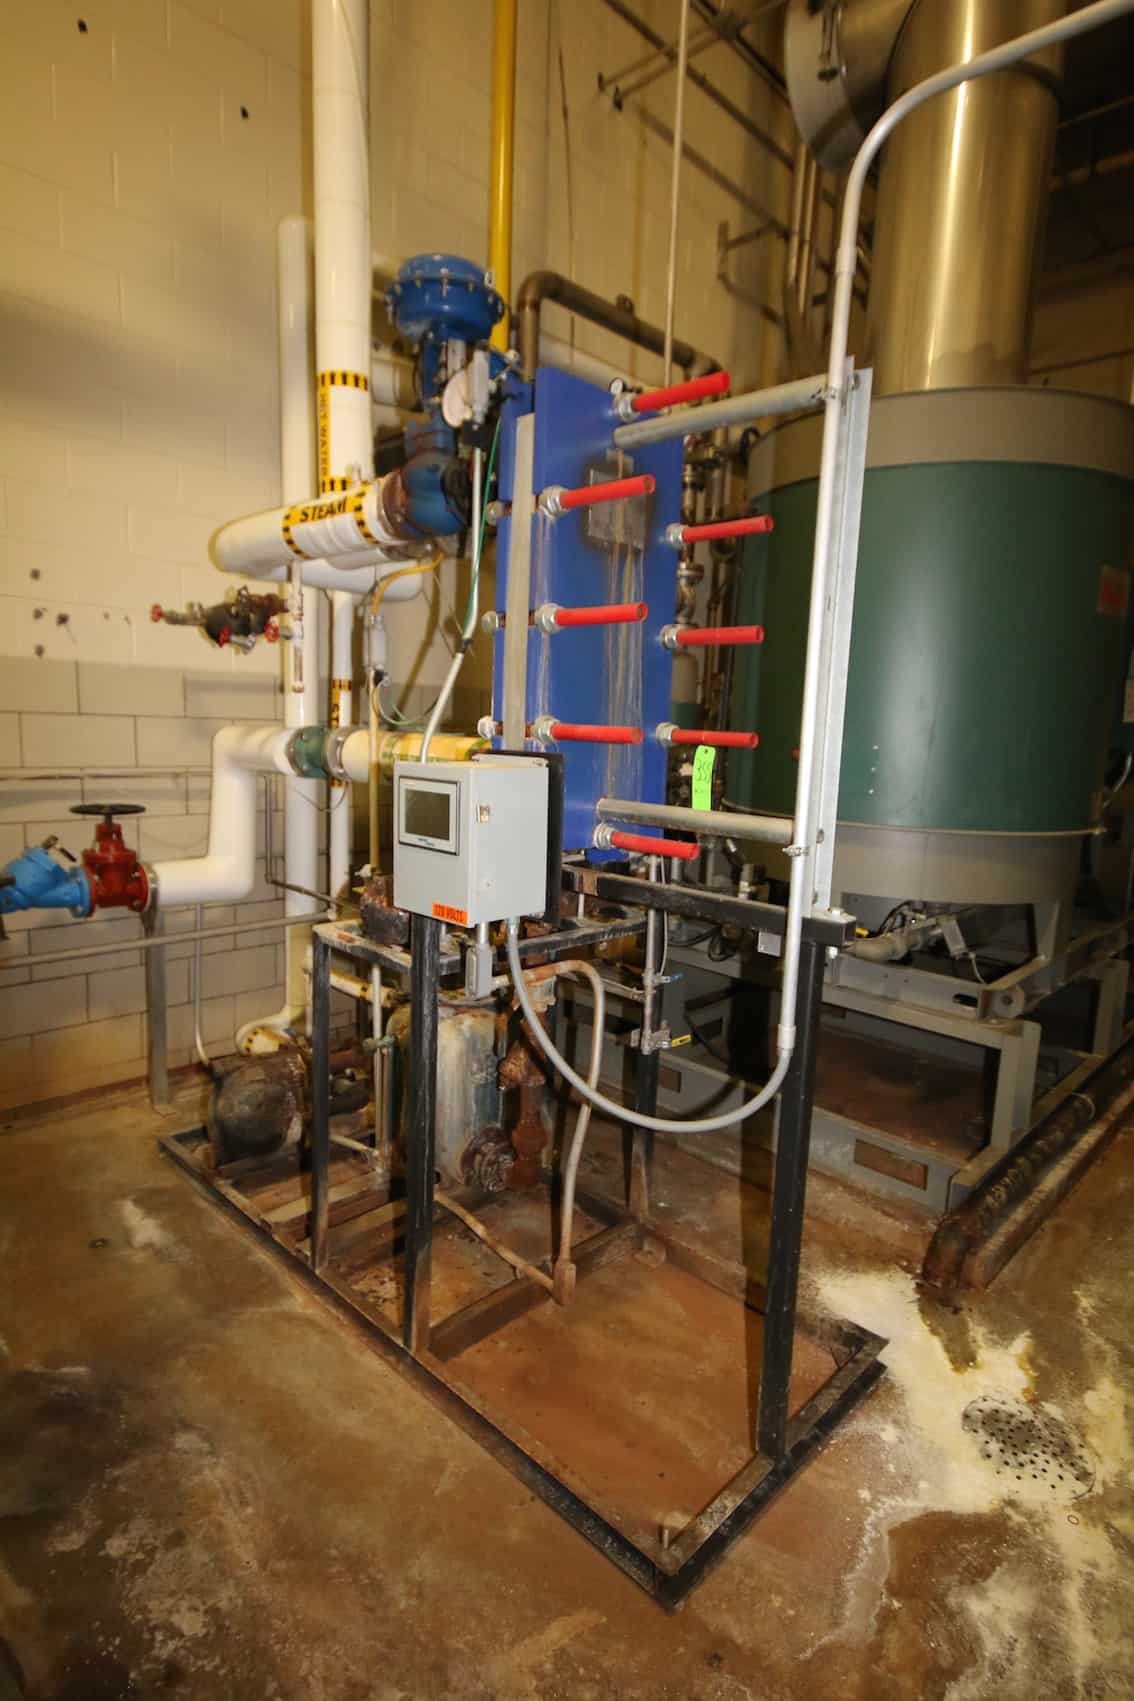 2011 Hot Water Circulation System with Alfa Laval Plate Frame -Tigerflow Skid Mounted Boiler Feed System with (3) Pumps, (3) ABB VFDs and Red Lion Touchscreen Controls